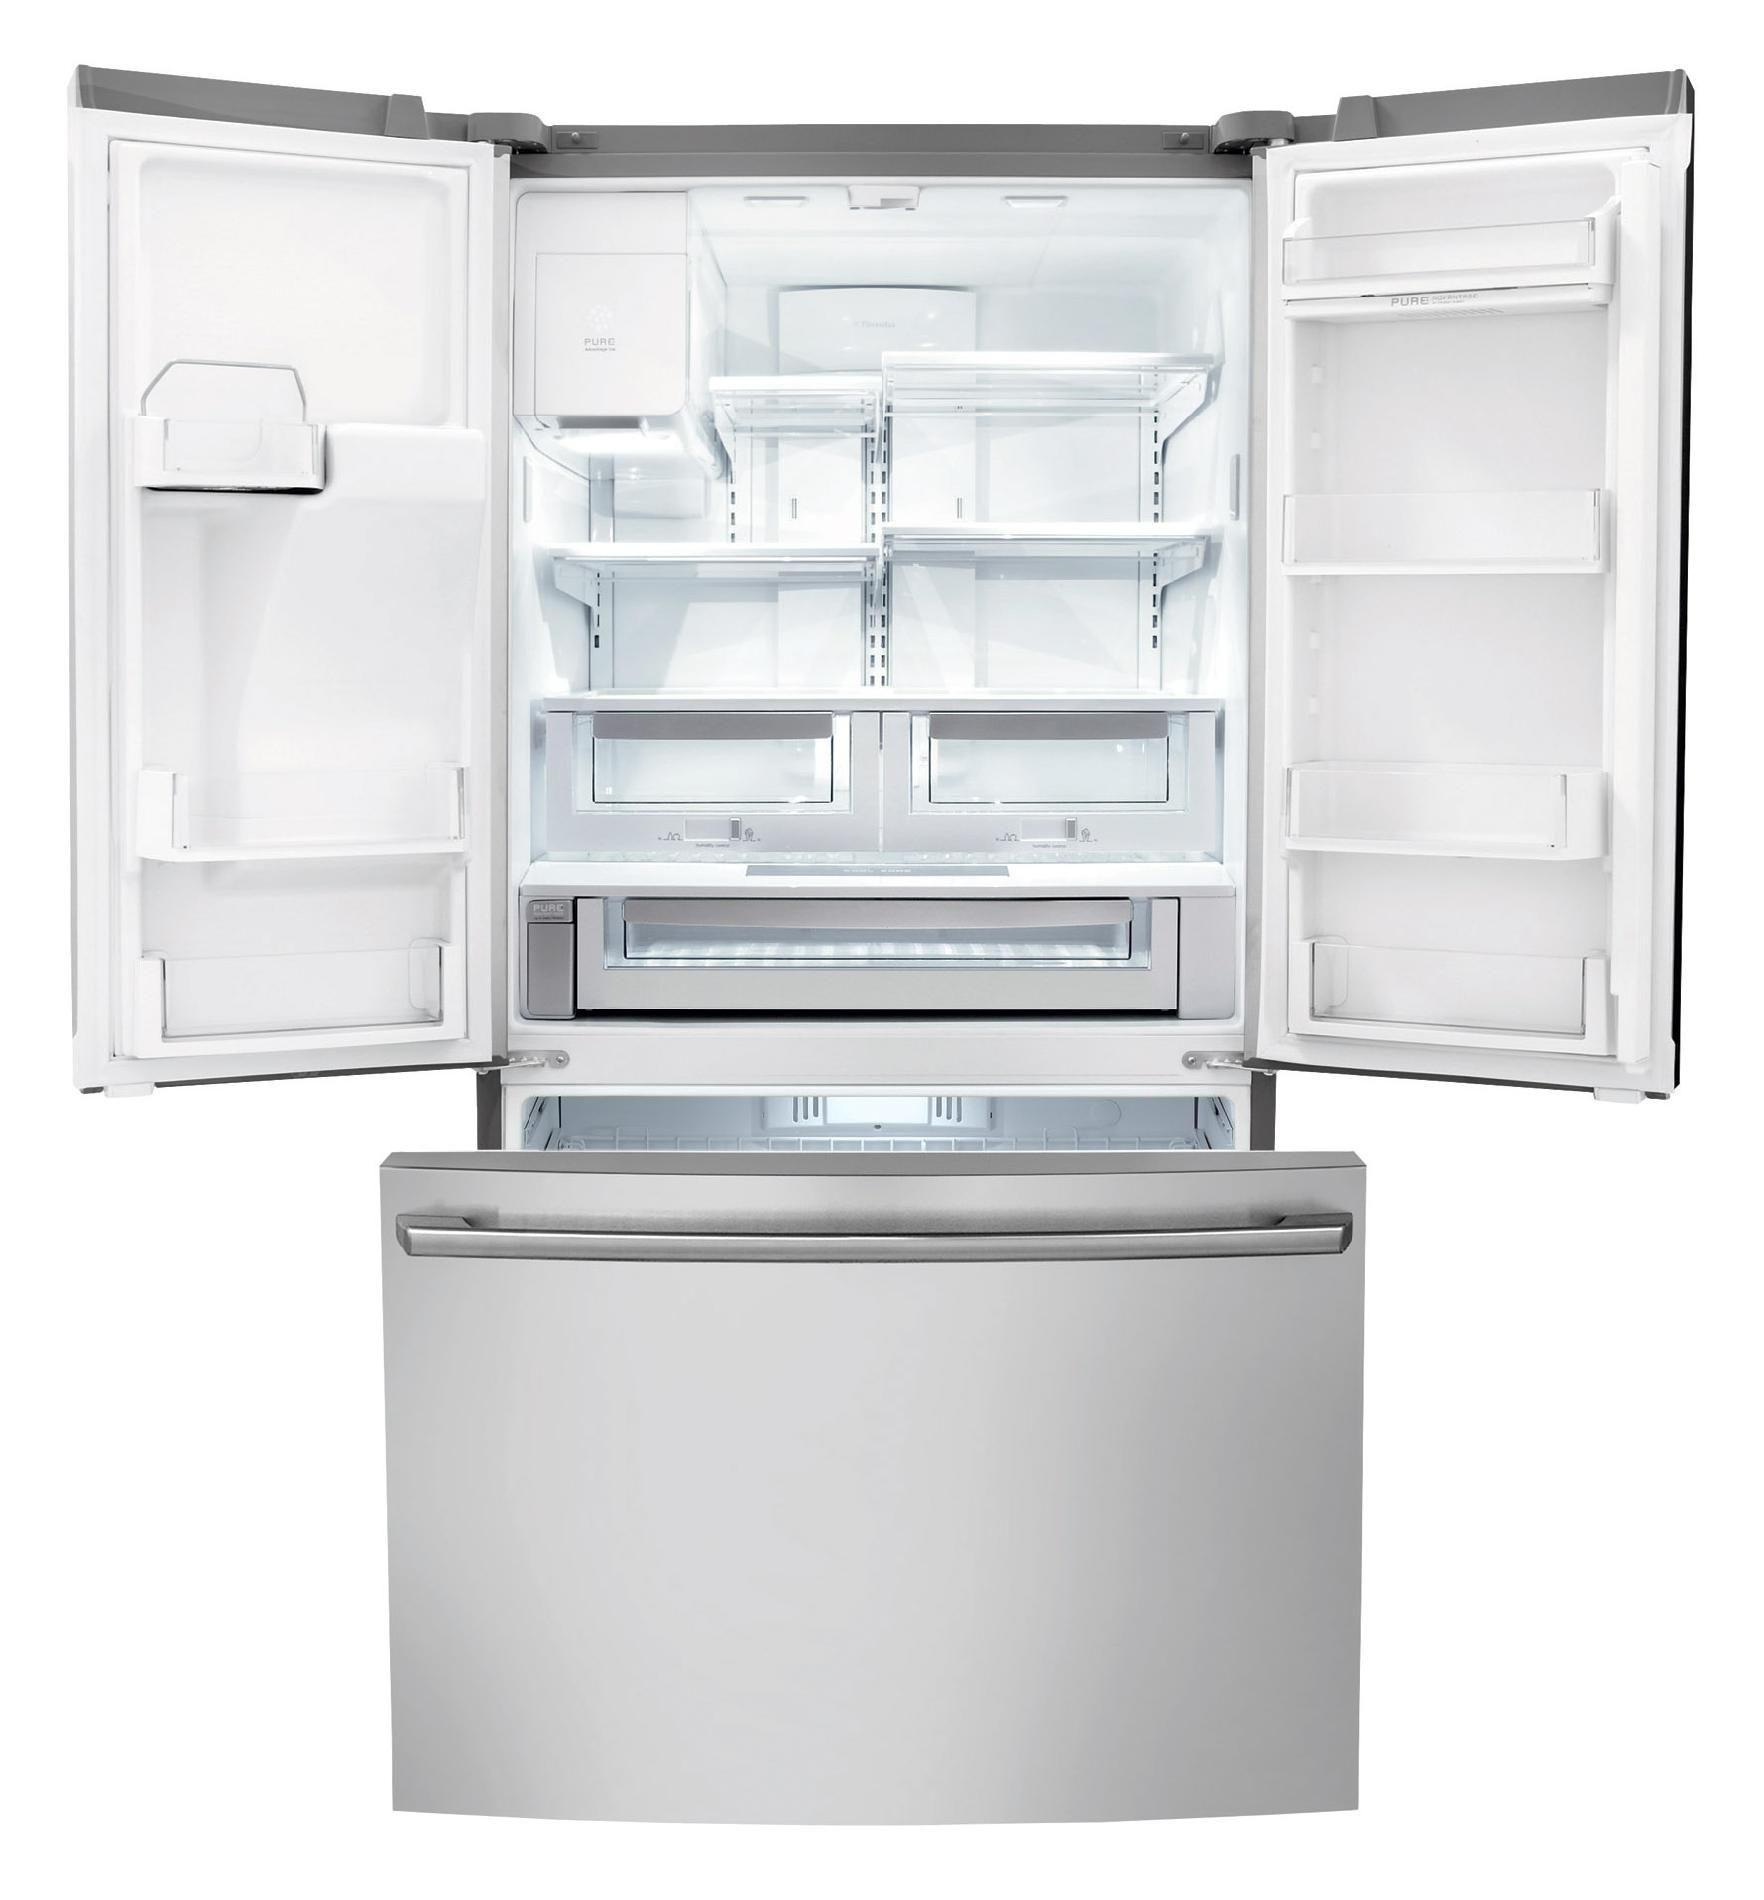 Electrolux 23 cu. ft. Counter-depth French Door Refrigerator with IQ-Touch™ Controls - Stainless Steel